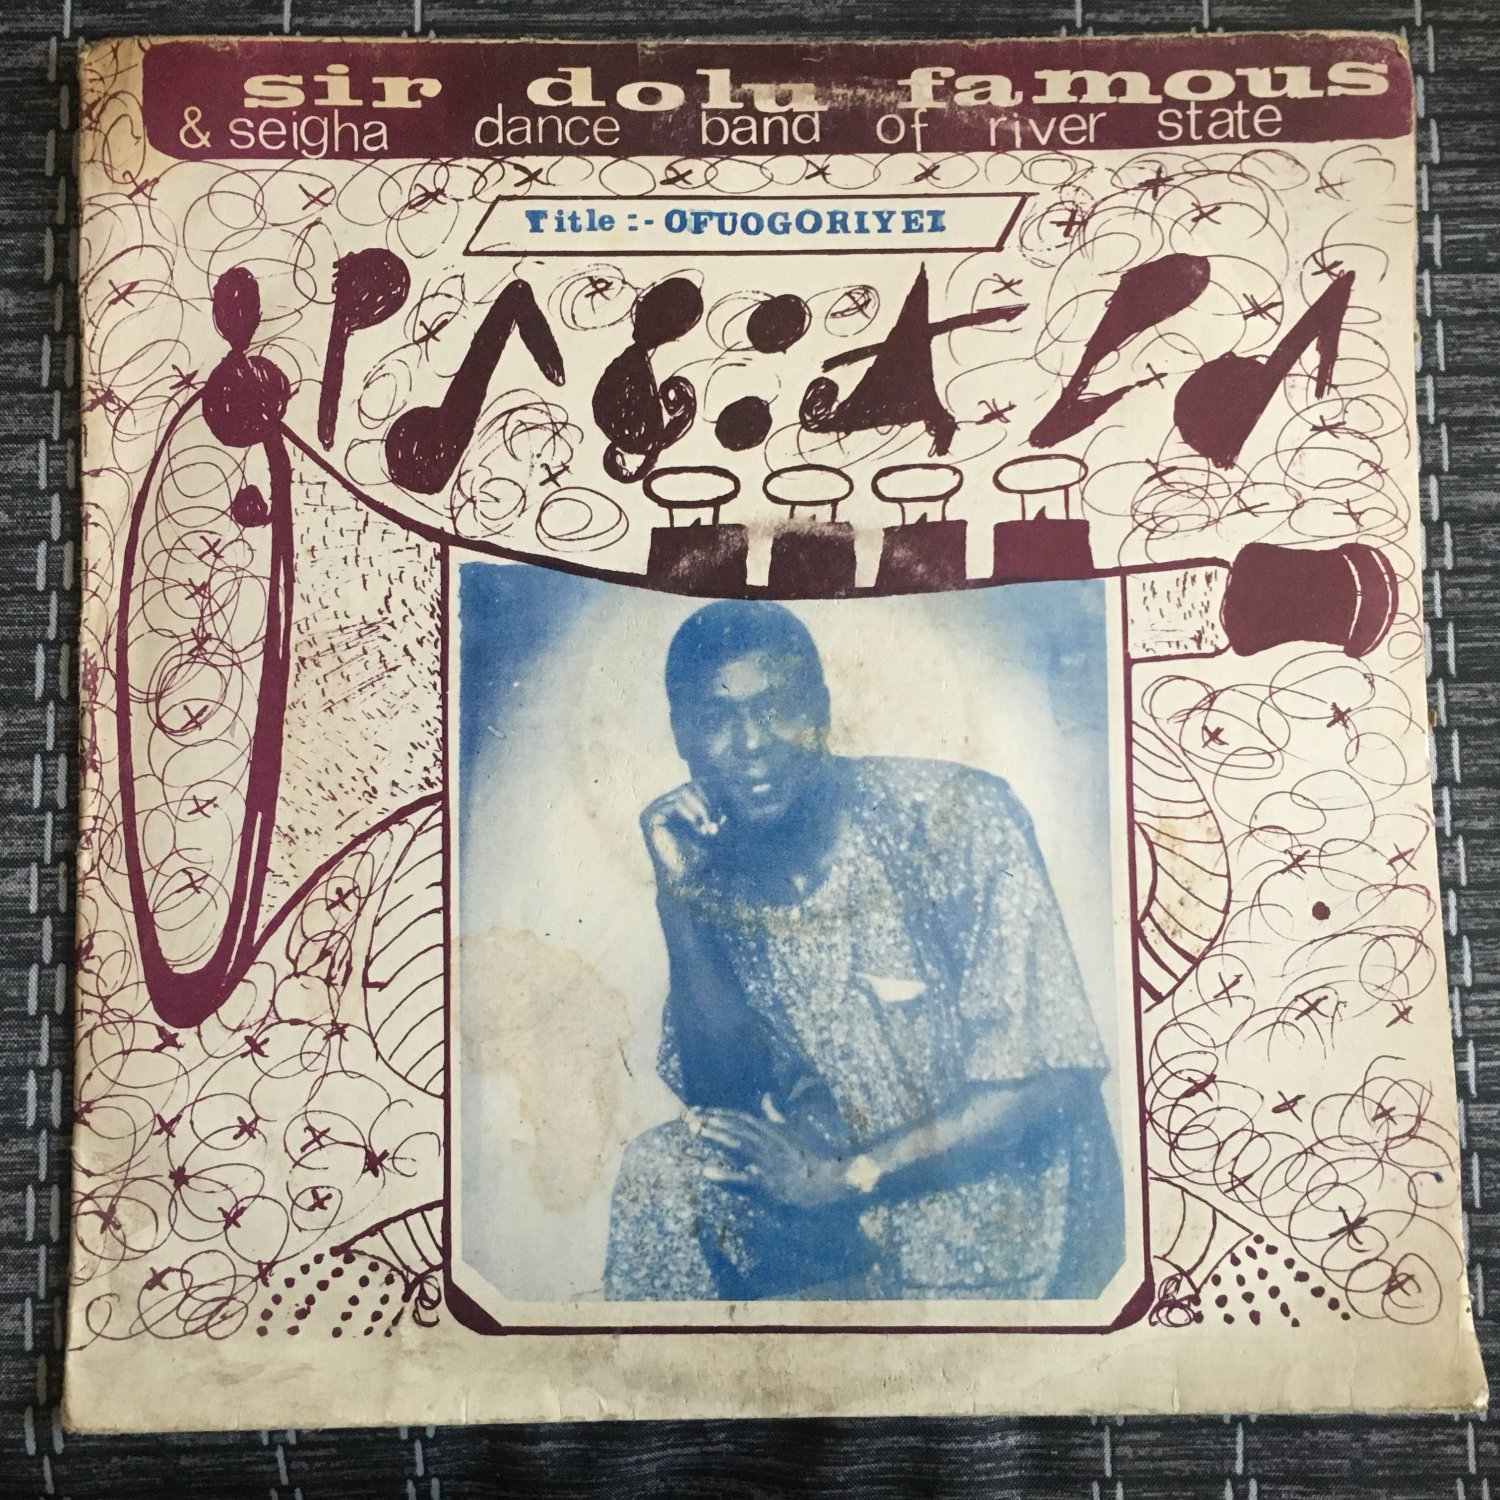 SIR DOLU FAMOUS & SEIGHA DANCE BAND OF RIVER STATE LP ofuogoriyei NIGERIA mp3 LISTEN